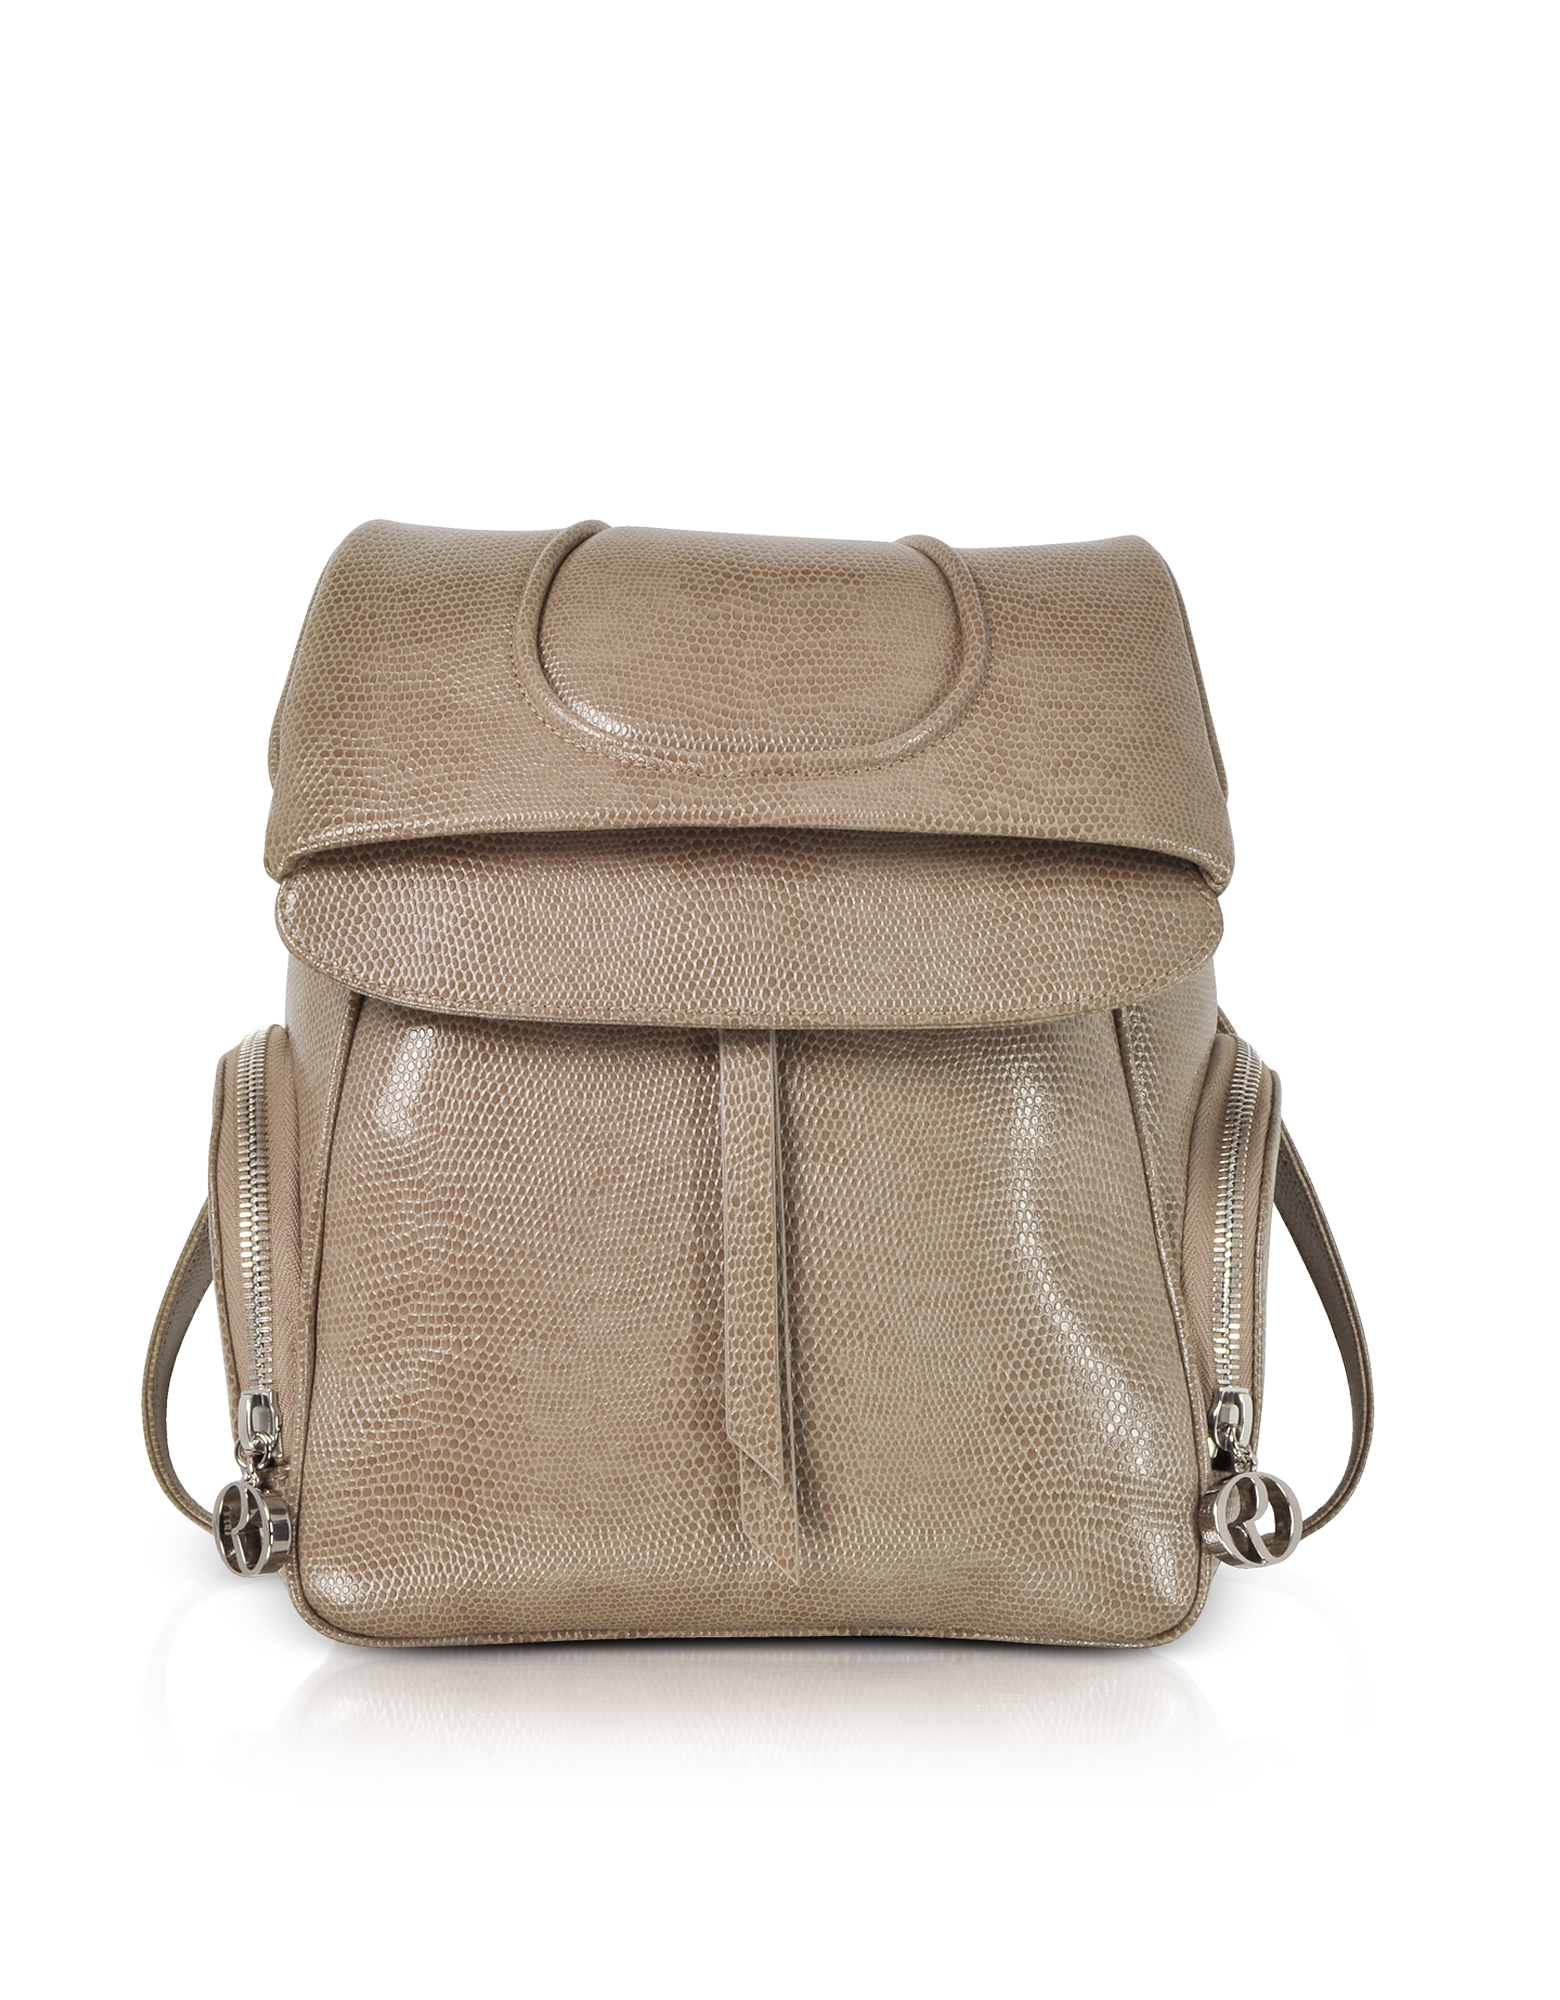 Taupe Lizard Embossed Leather Backpack. Taupe Lizard Embossed Leather Backpack, is a sleek take on the urbanites' favorite bag with a